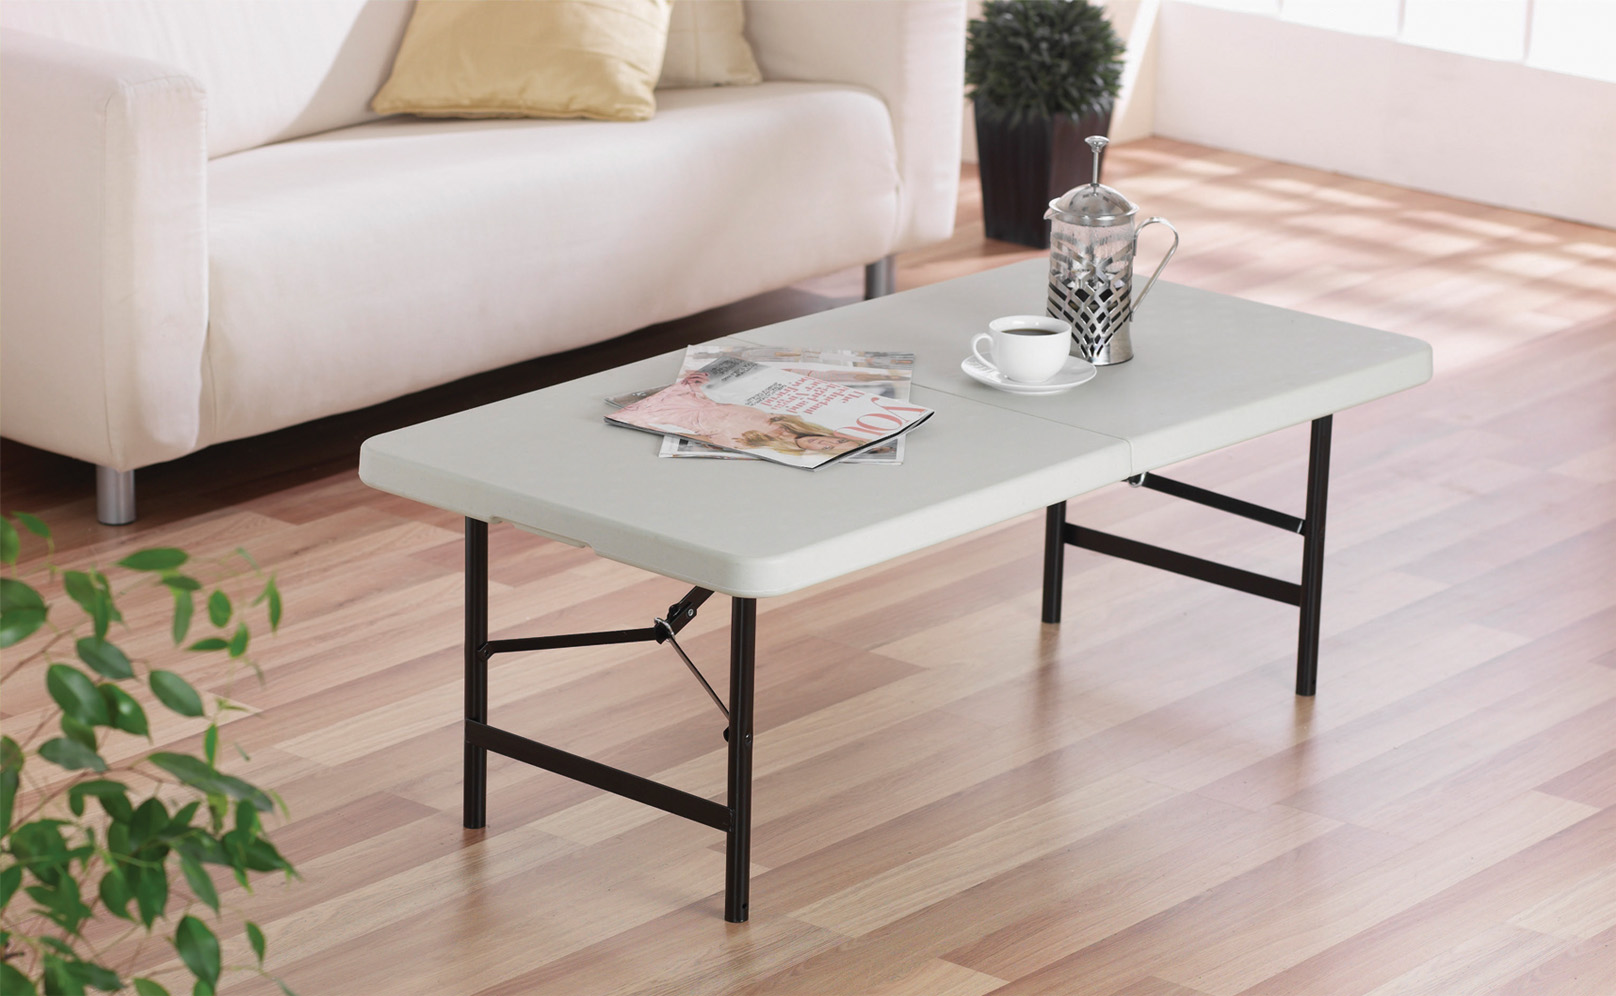 Fold Away Dining Tables Dining Table Fold Away Dining Table And Chairs Fold Away Blackwood